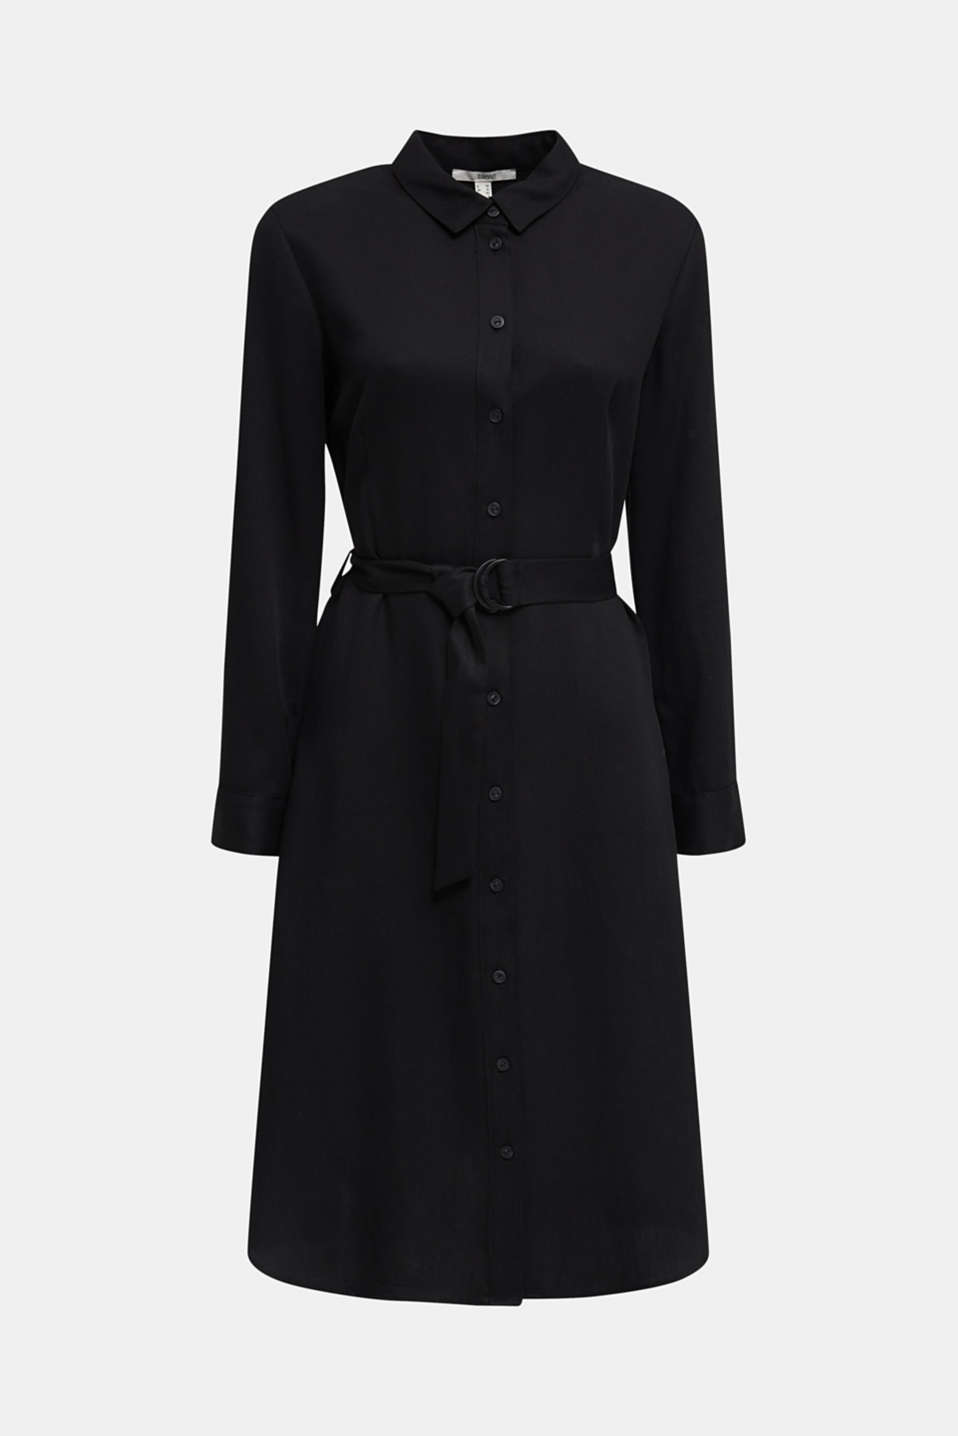 Shirt dress with a belt, lyocell, BLACK 3, detail image number 9